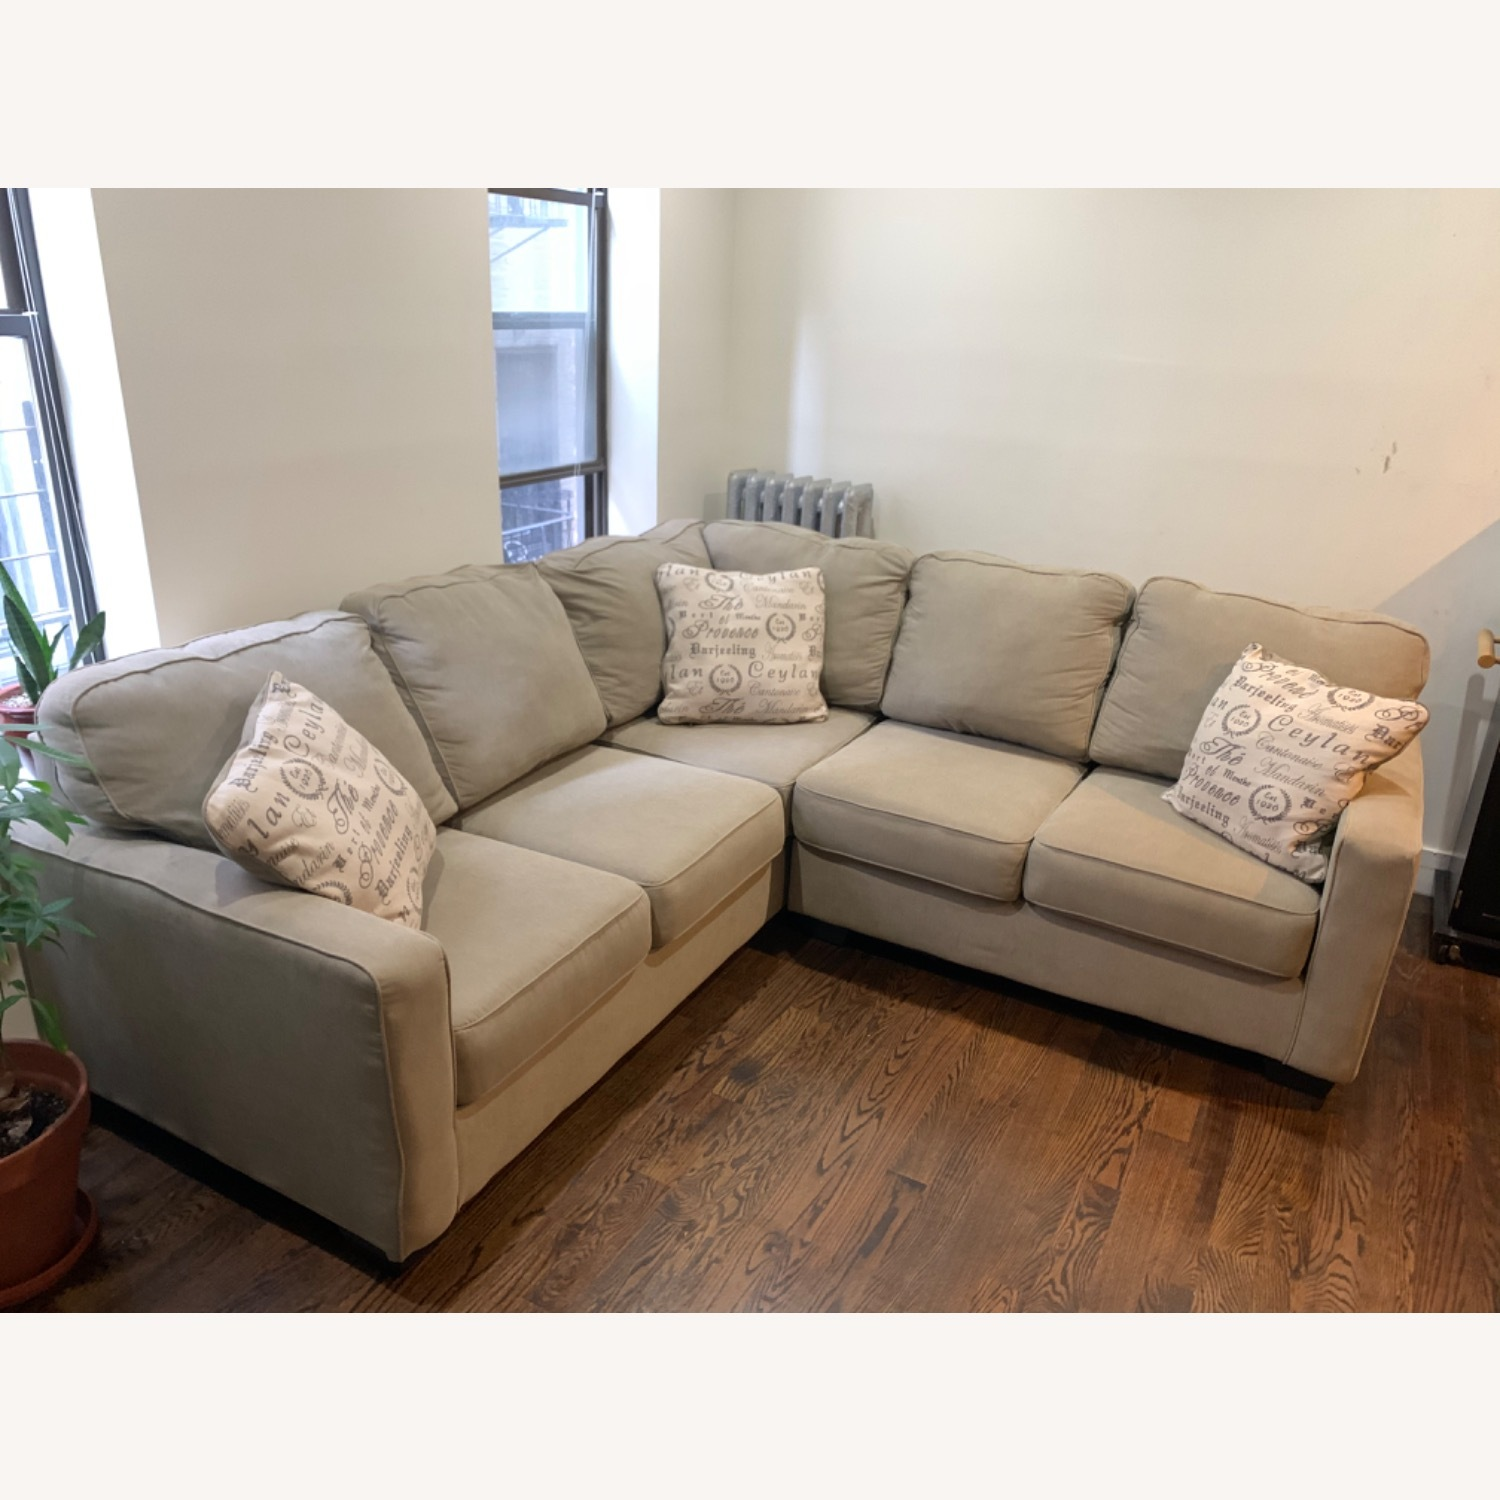 Ashley Furniture Big Comfy Couch - image-1